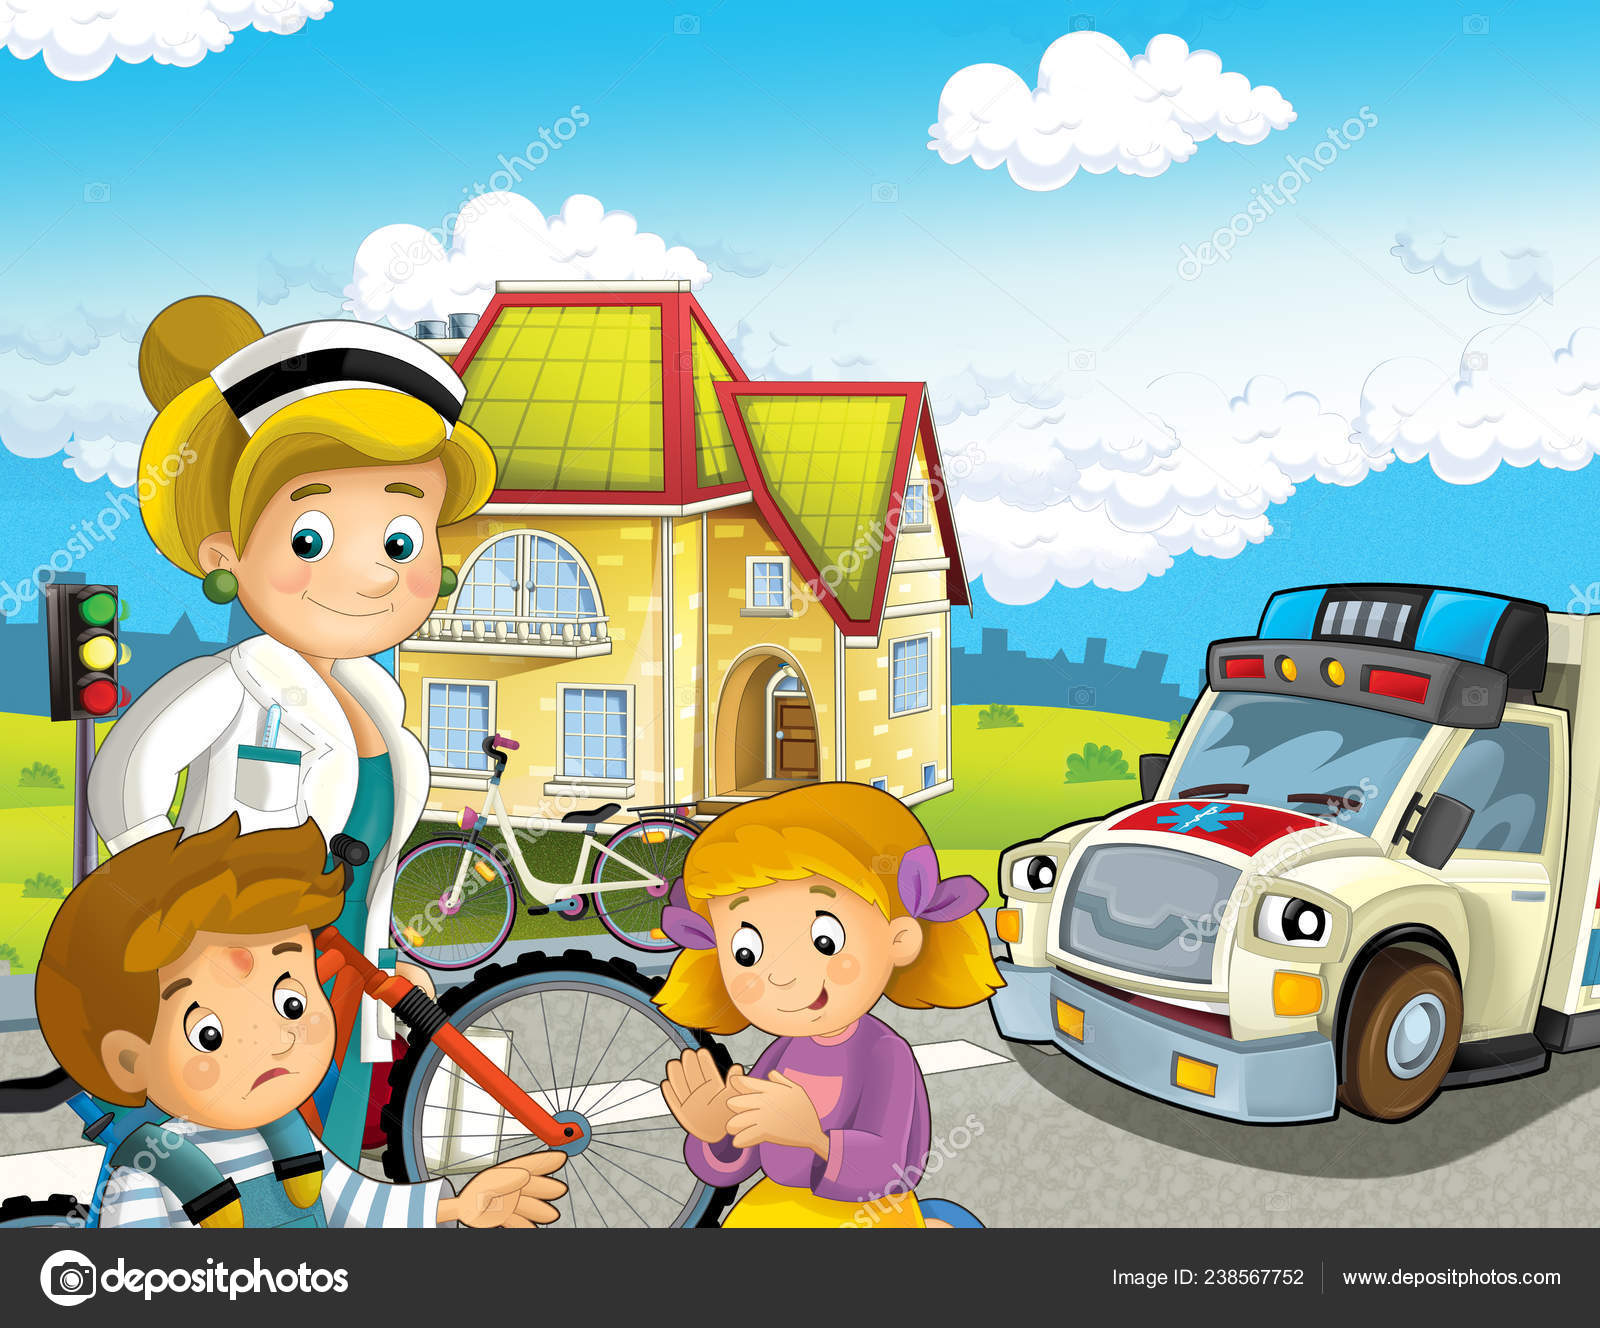 Cartoon Scene Kids Bicycle Accident Ambulance Doctor Coming Help